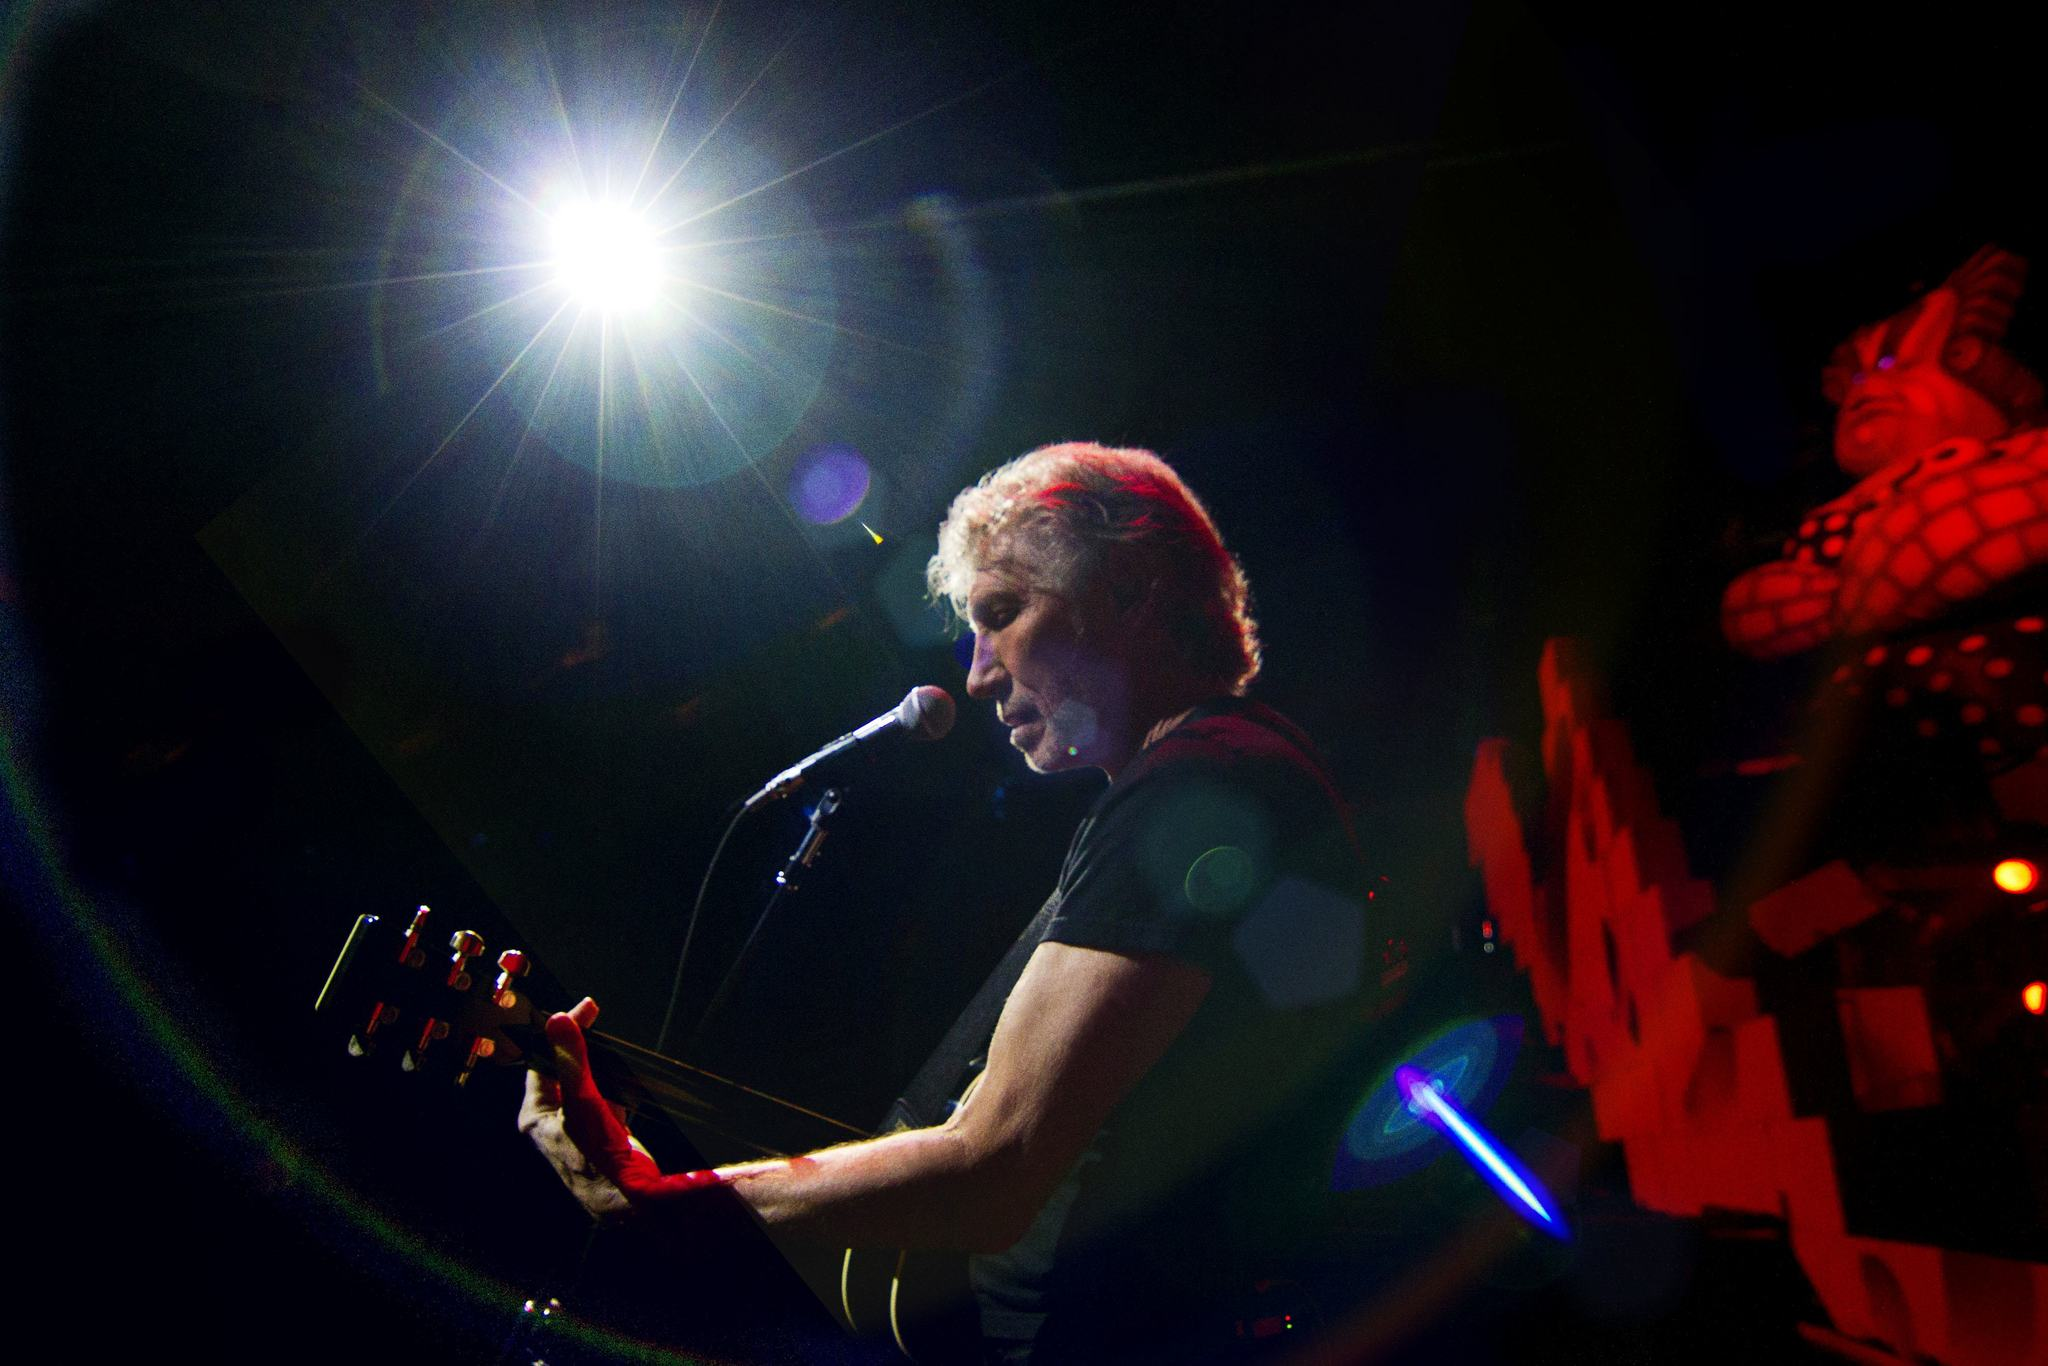 Roger Waters builds the 'Wall' this weekend at Yankee Stadium; turns 70 in September